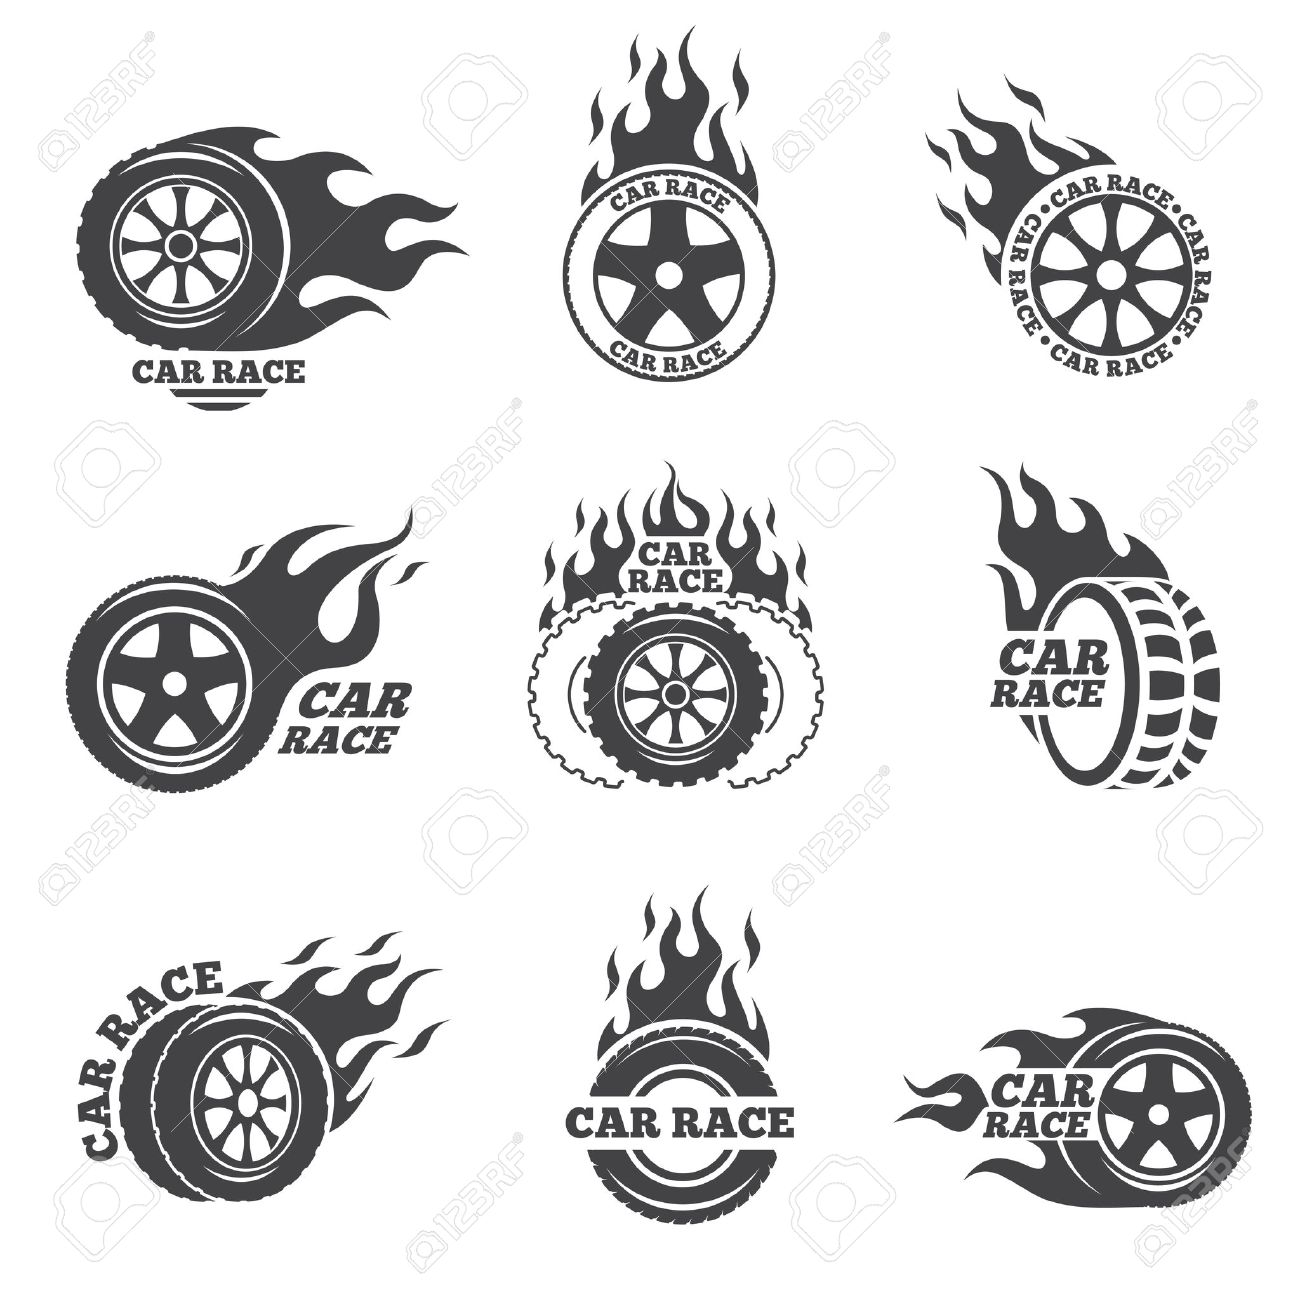 Car Race Logo Set Wheel With Fire Flame Sport Speed Tyre Blaze Royalty Free Cliparts Vectors And Stock Illustration Image 45979909